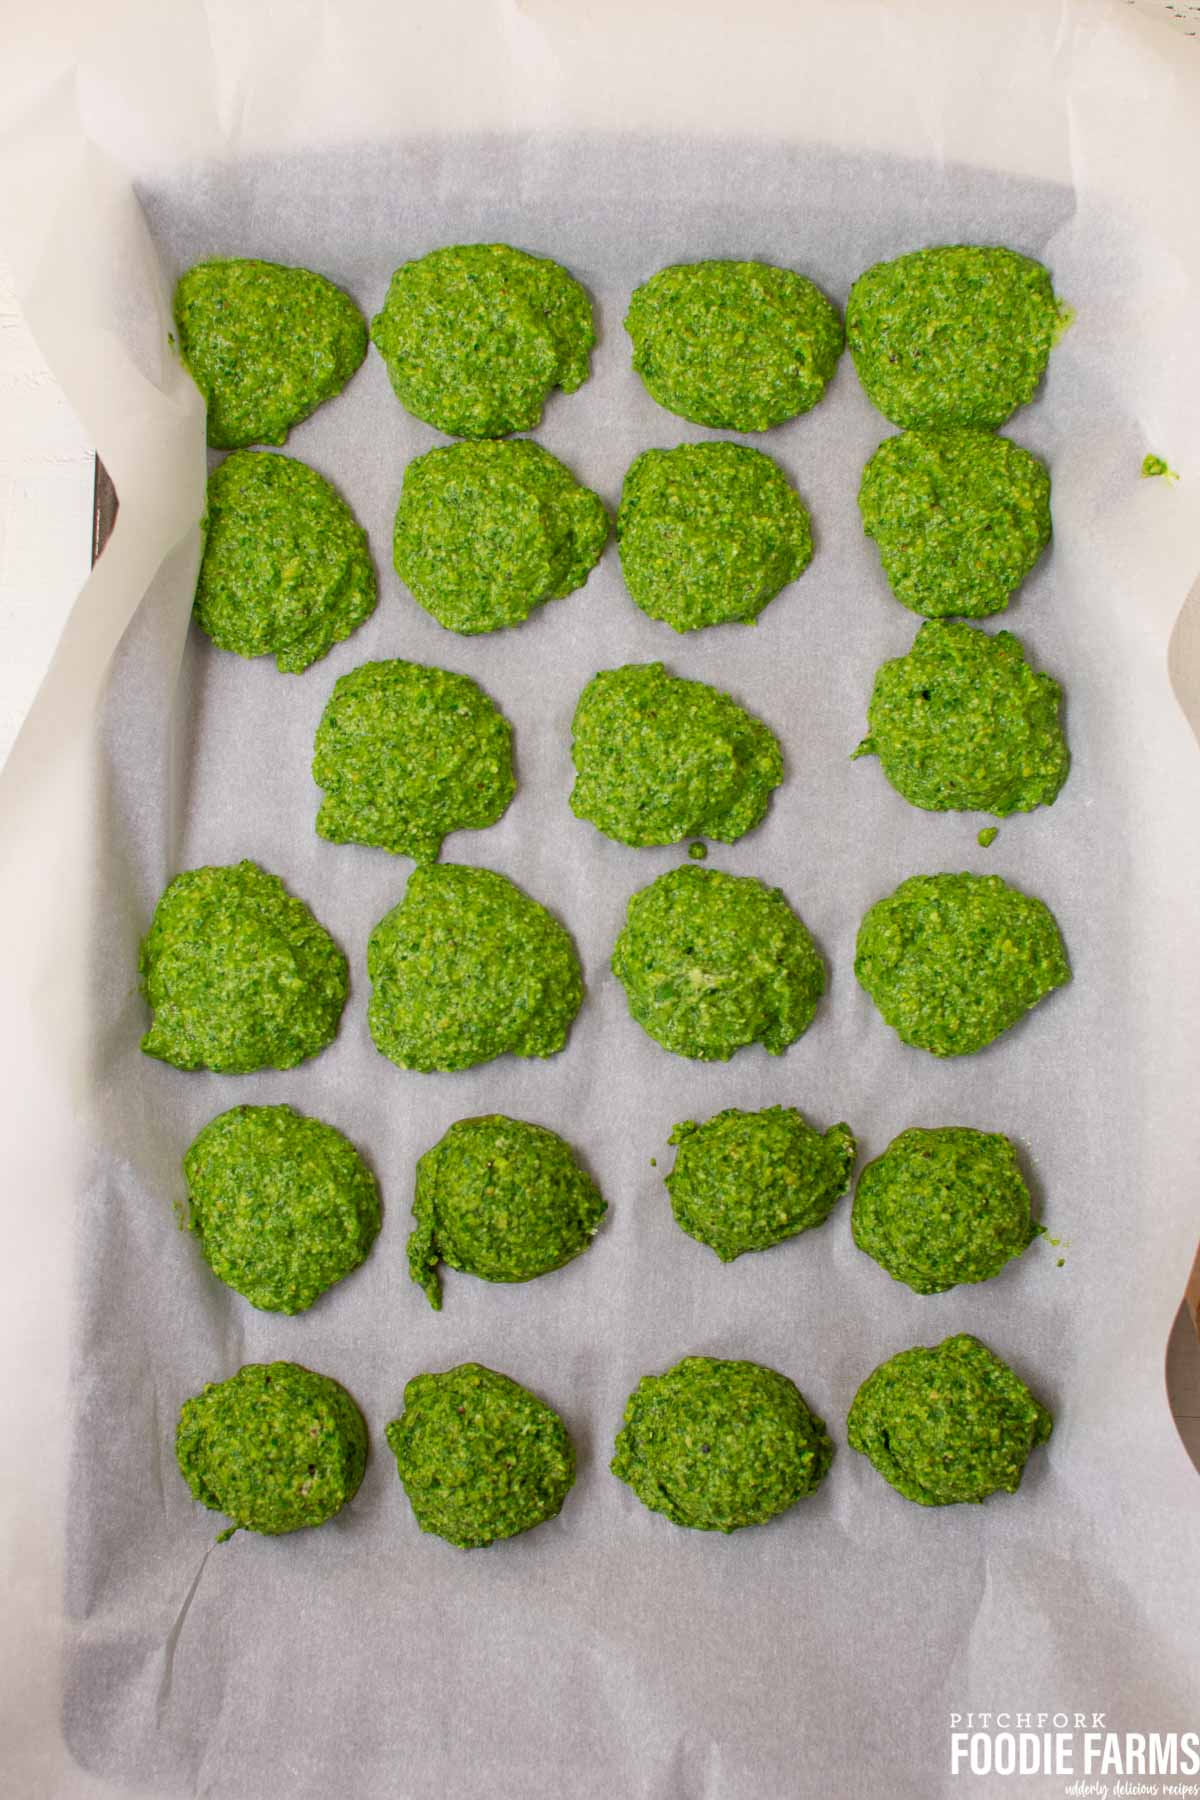 Scoops of pesto sauce on a parchment lined baking sheet.